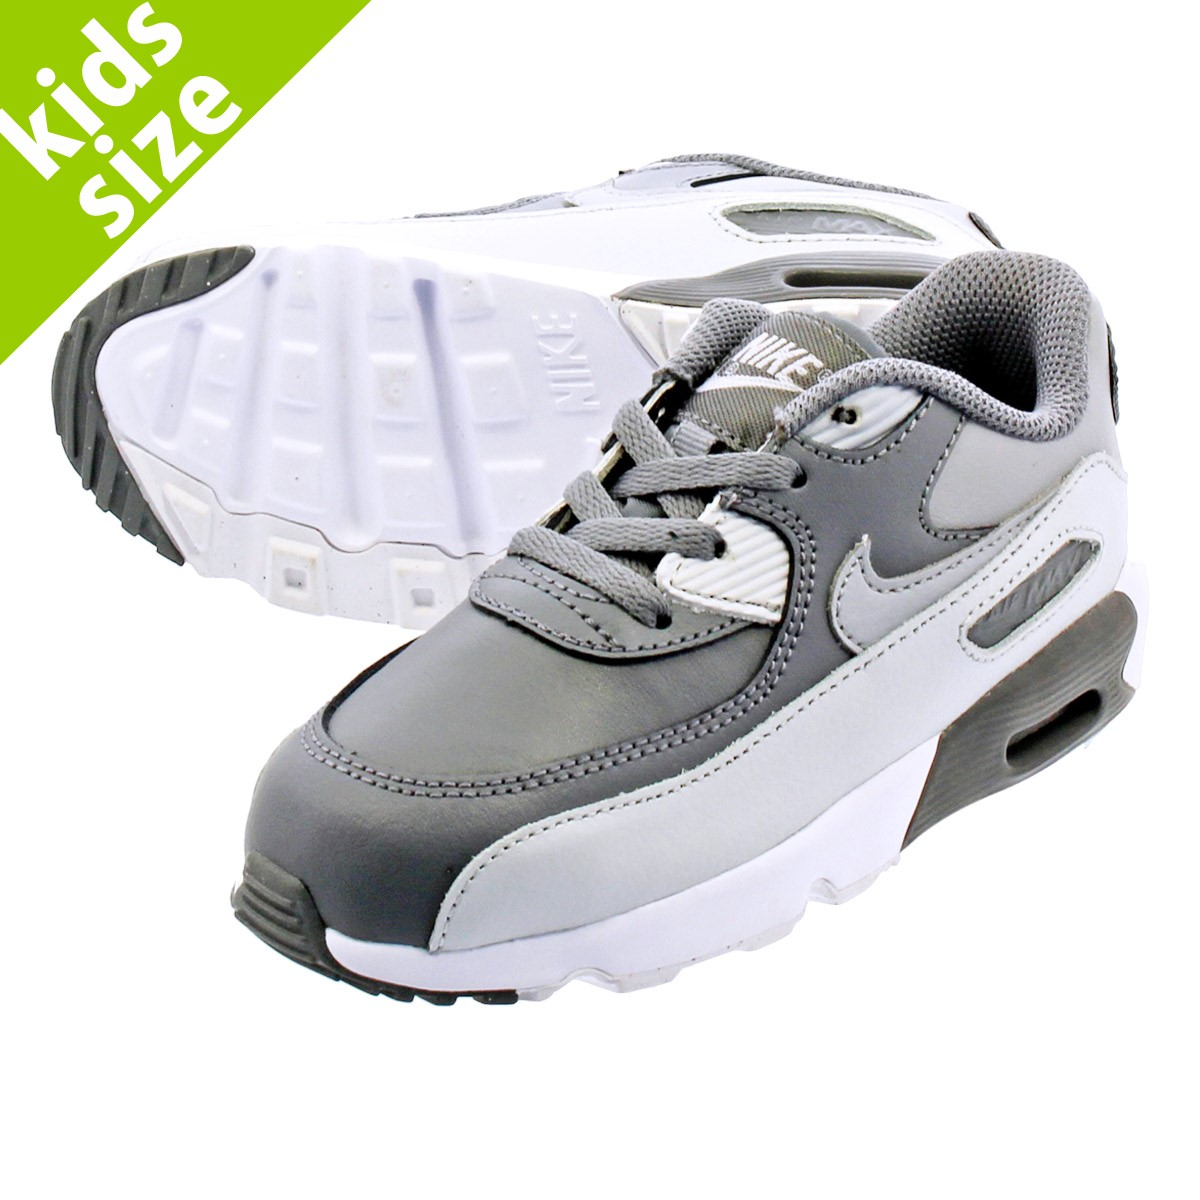 NIKE AIR MAX 90 LEATHER TD Kie Ney AMAX 90 leather TD COOL GREY WOLF GREY  833 58e456e465004